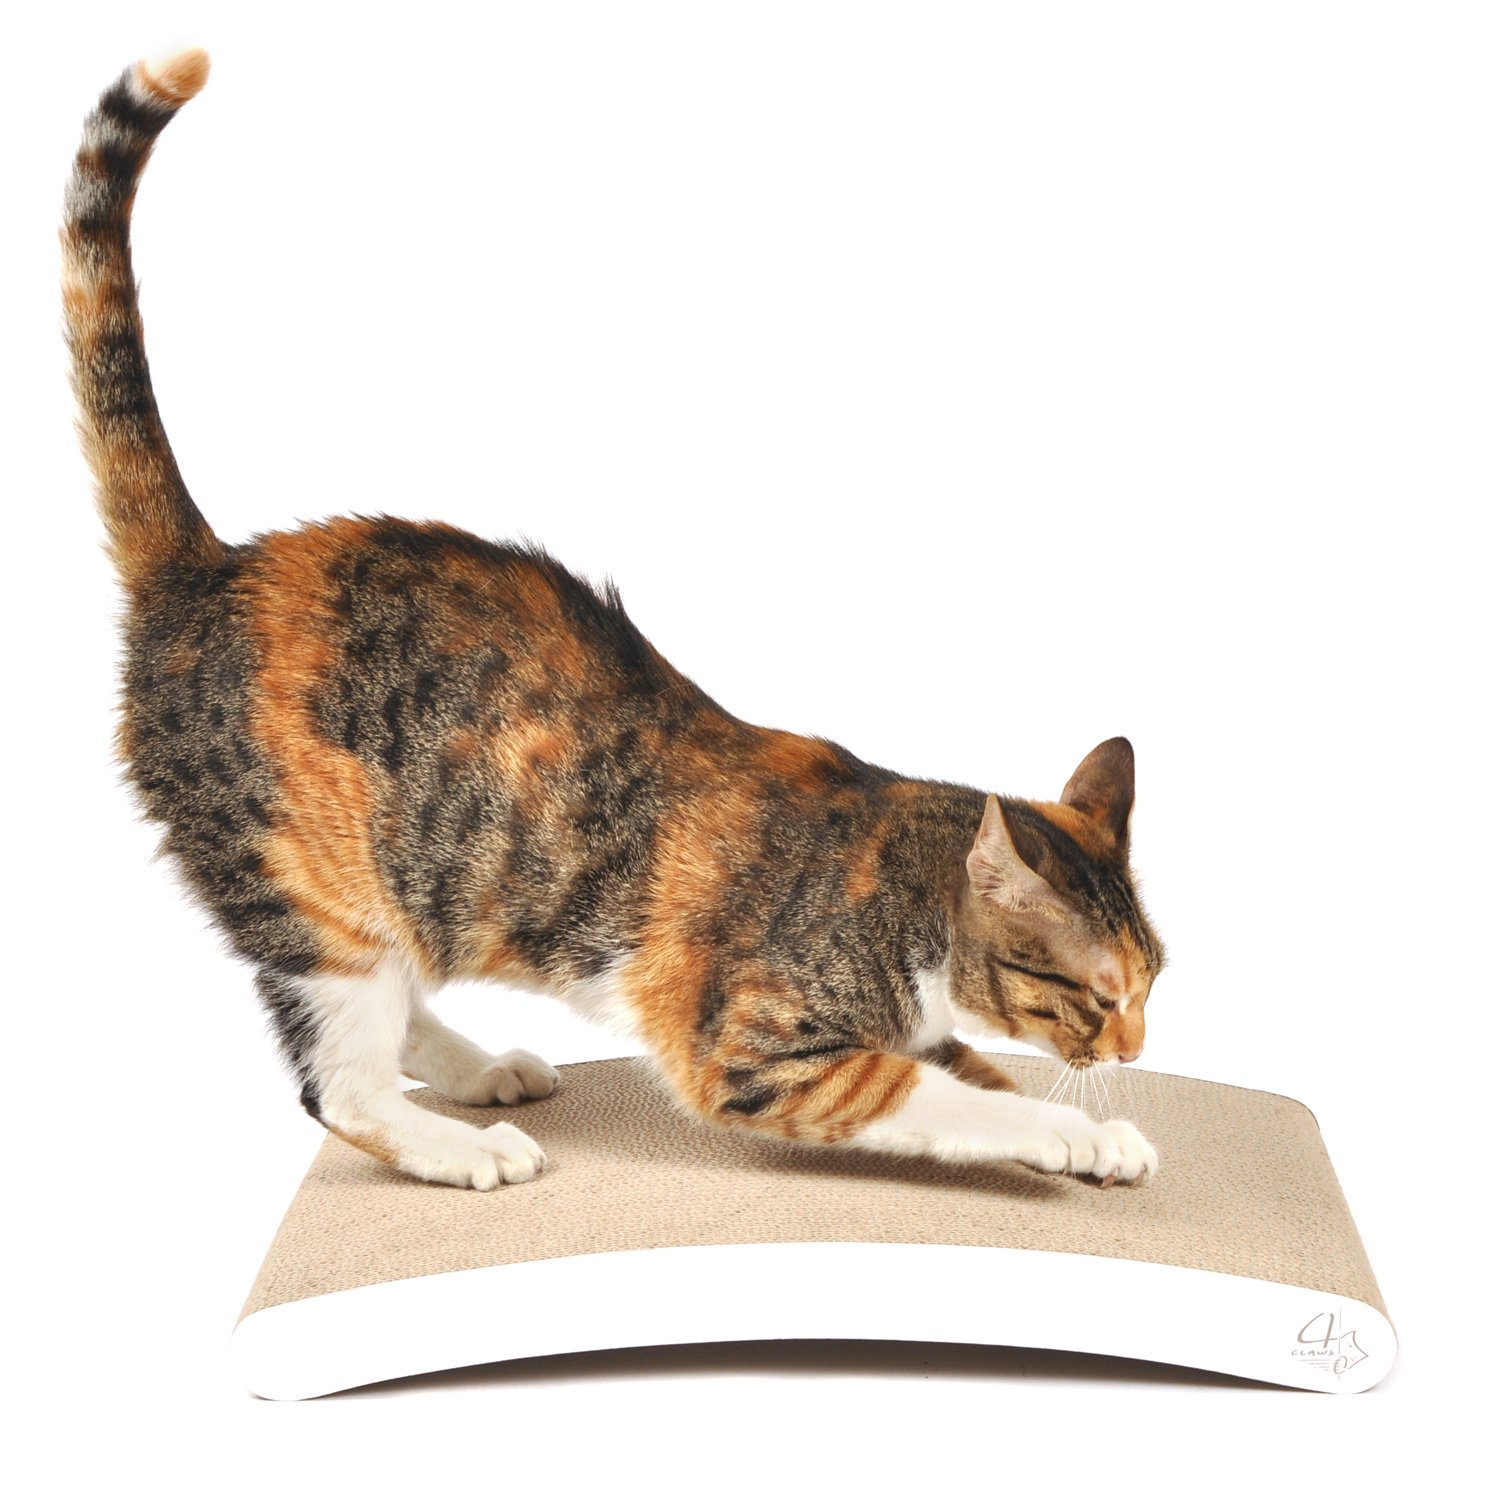 4CLAWS Curve Scratching Pad (2 Pack, White) - Basics Collection Cat Scratcher by 4CLAWS (Image #1)